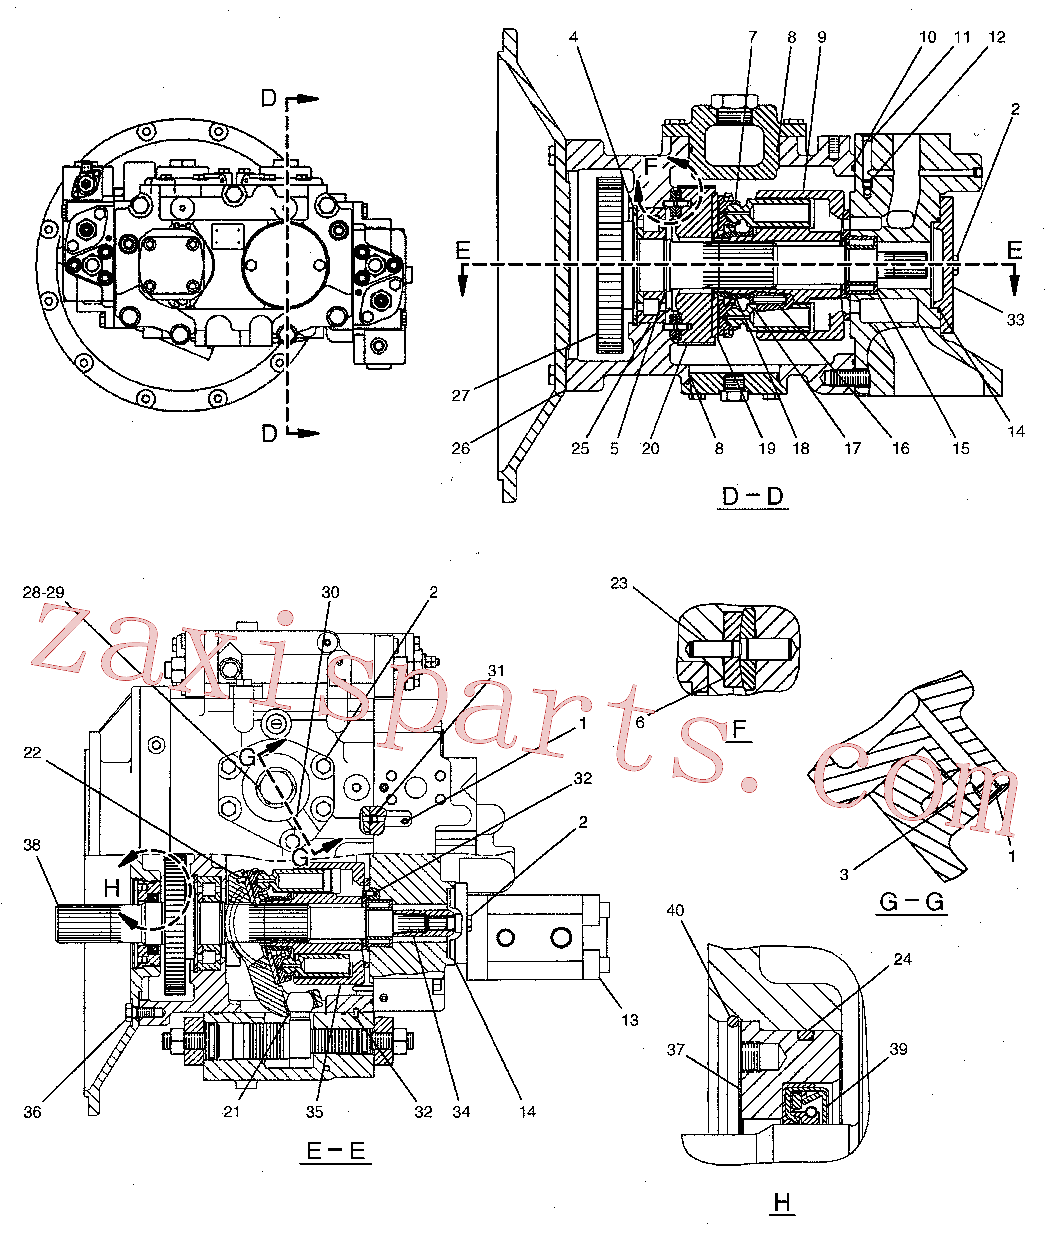 CAT 9T-0836 for 323D L Excavator(EXC) hydraulic system 244-8477 Assembly